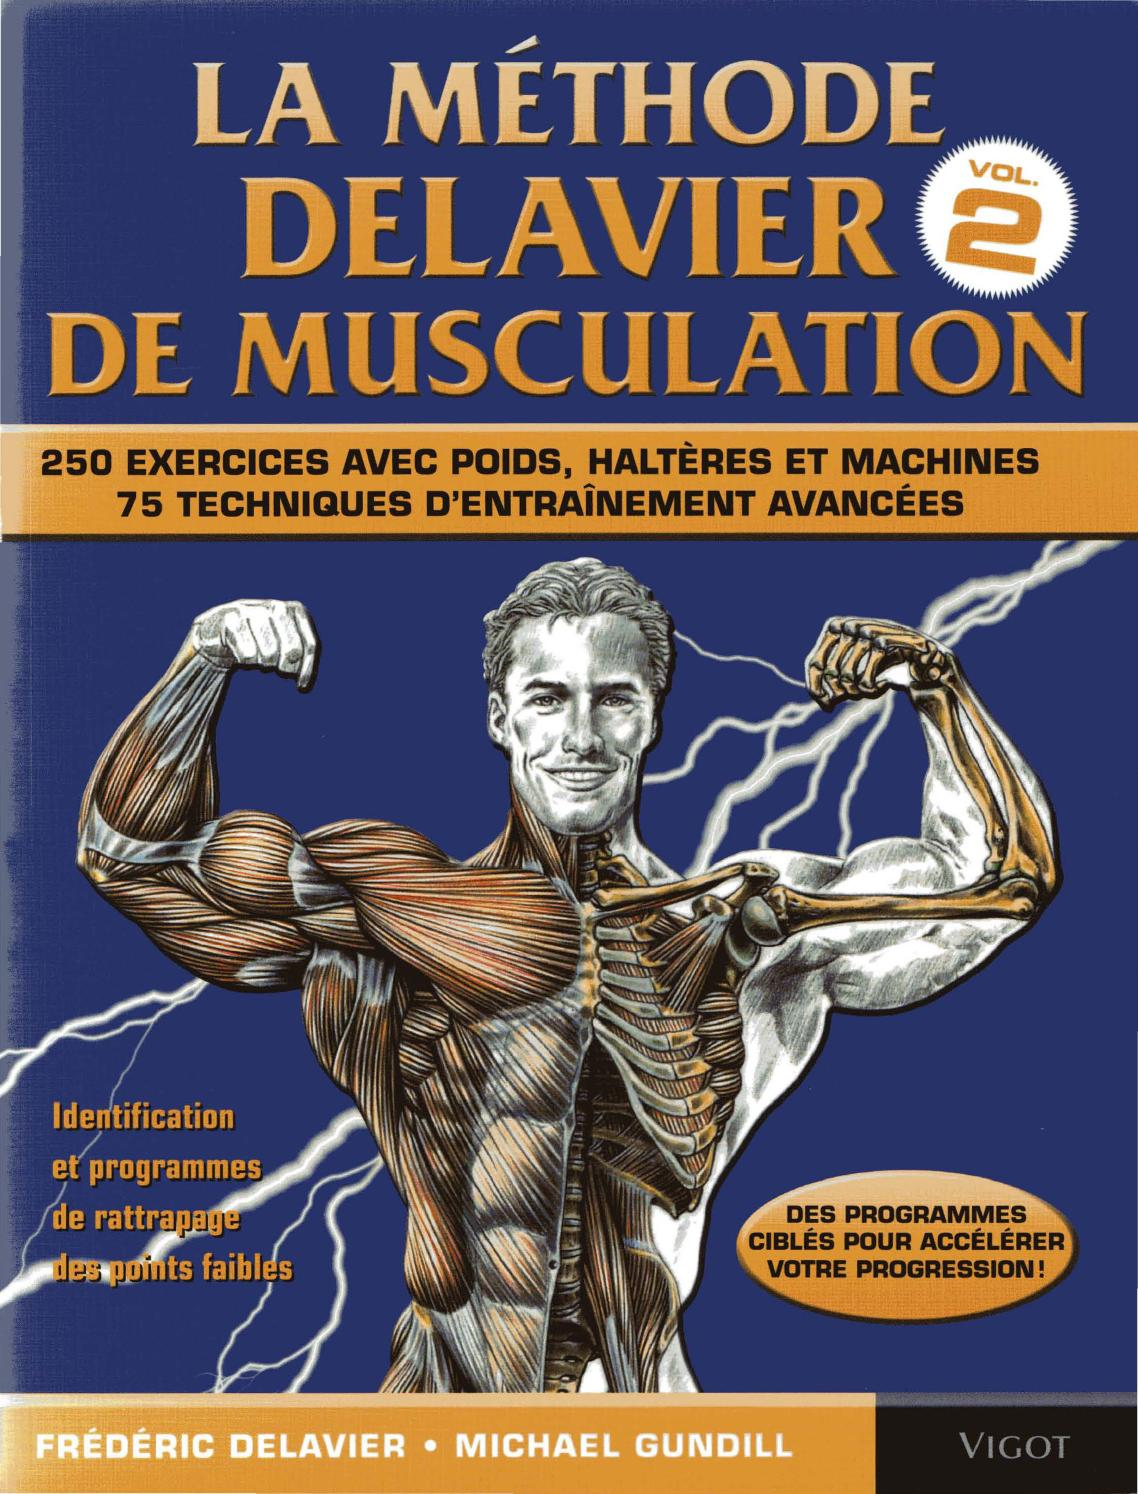 Delavier Frederic Guide Des Mouvements De Musculation Volume 2 By Swag Issuu